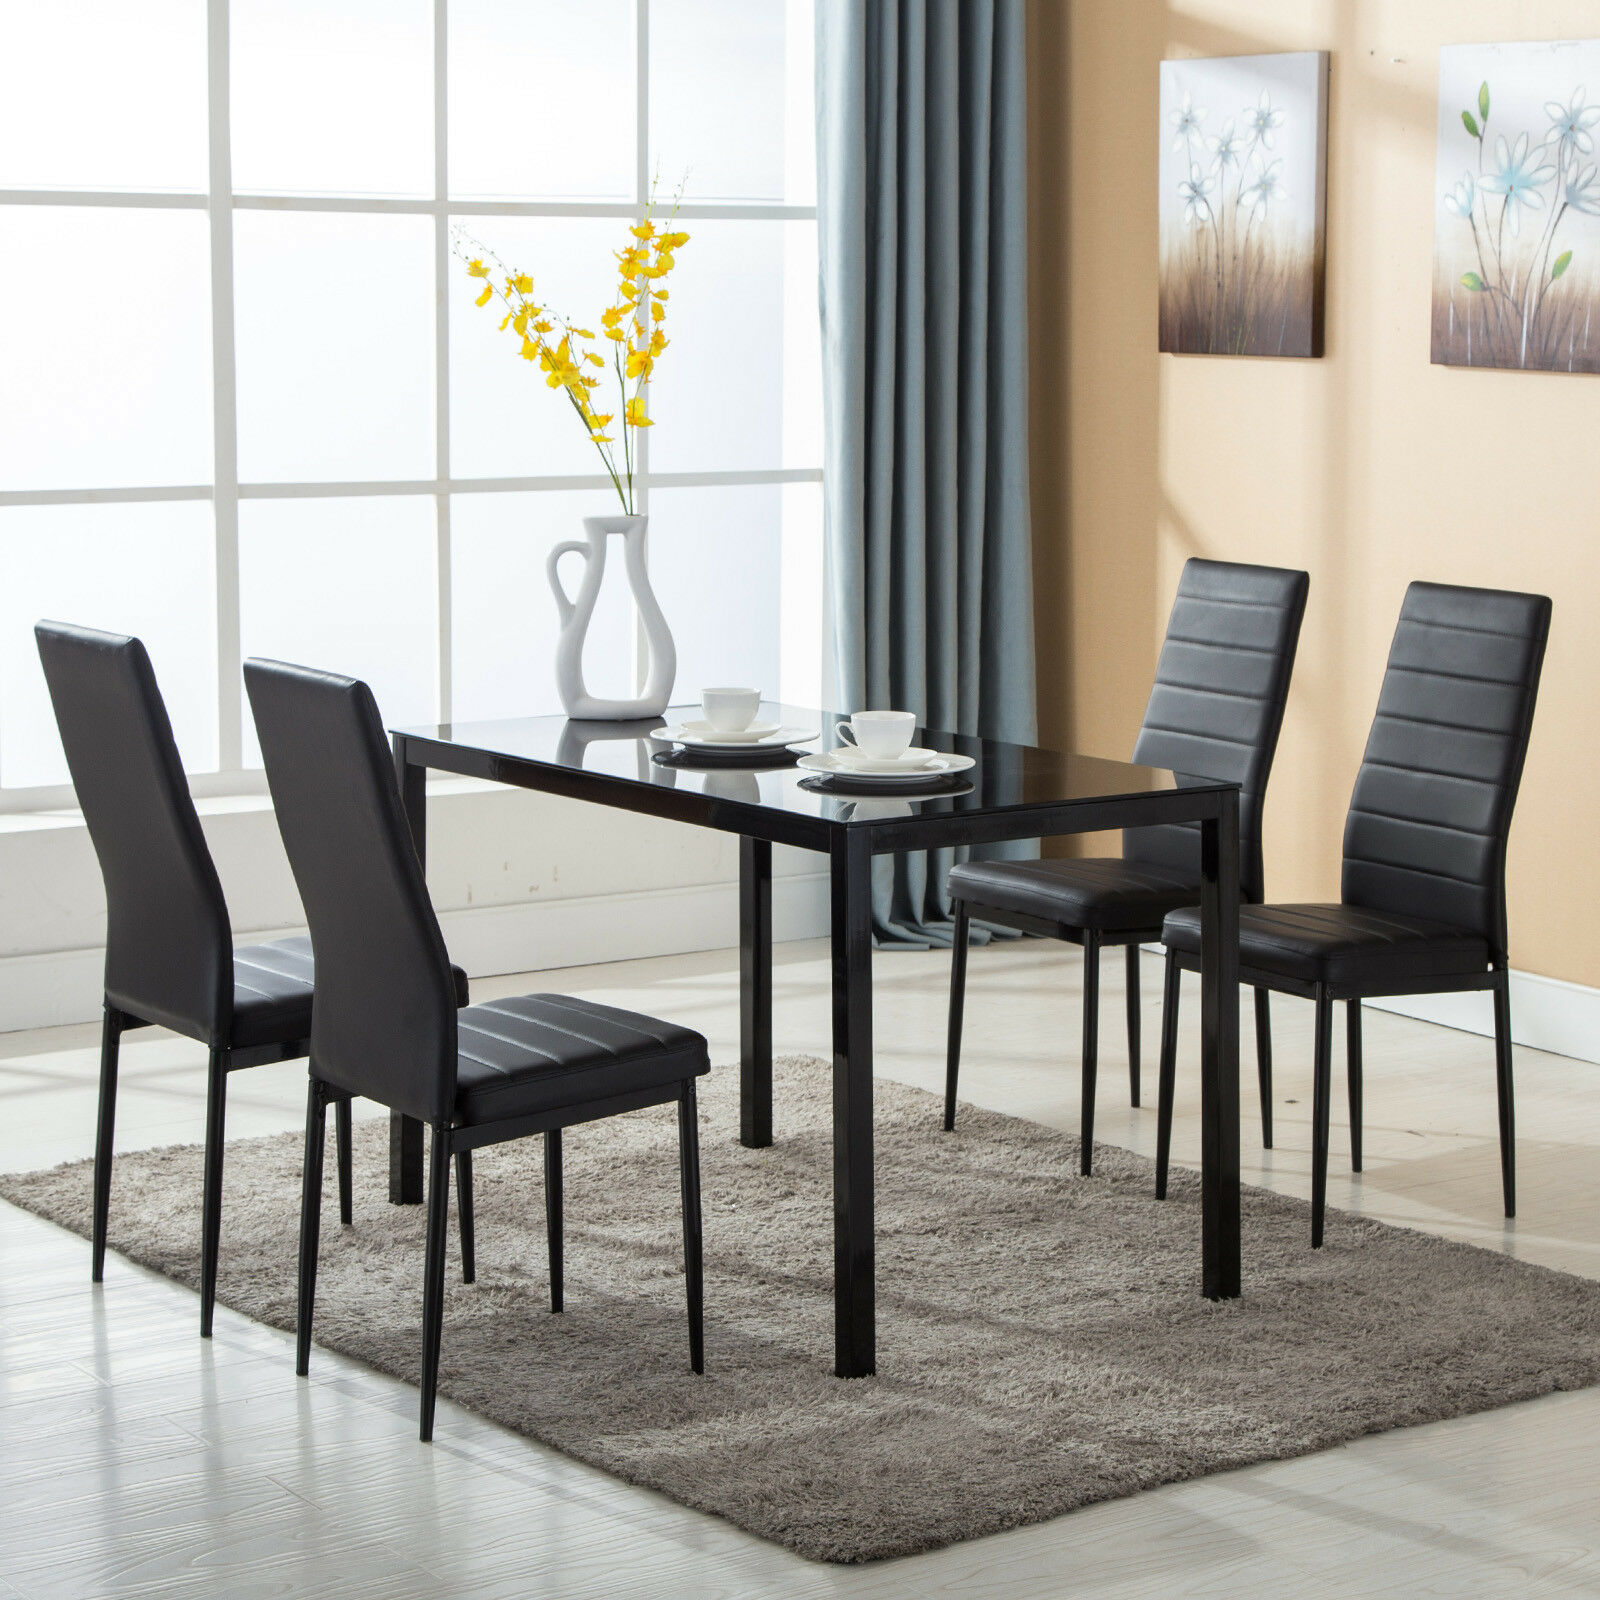 5 Piece Dining Table Set 4 Chairs Glass Metal Kitchen Room Breakfast